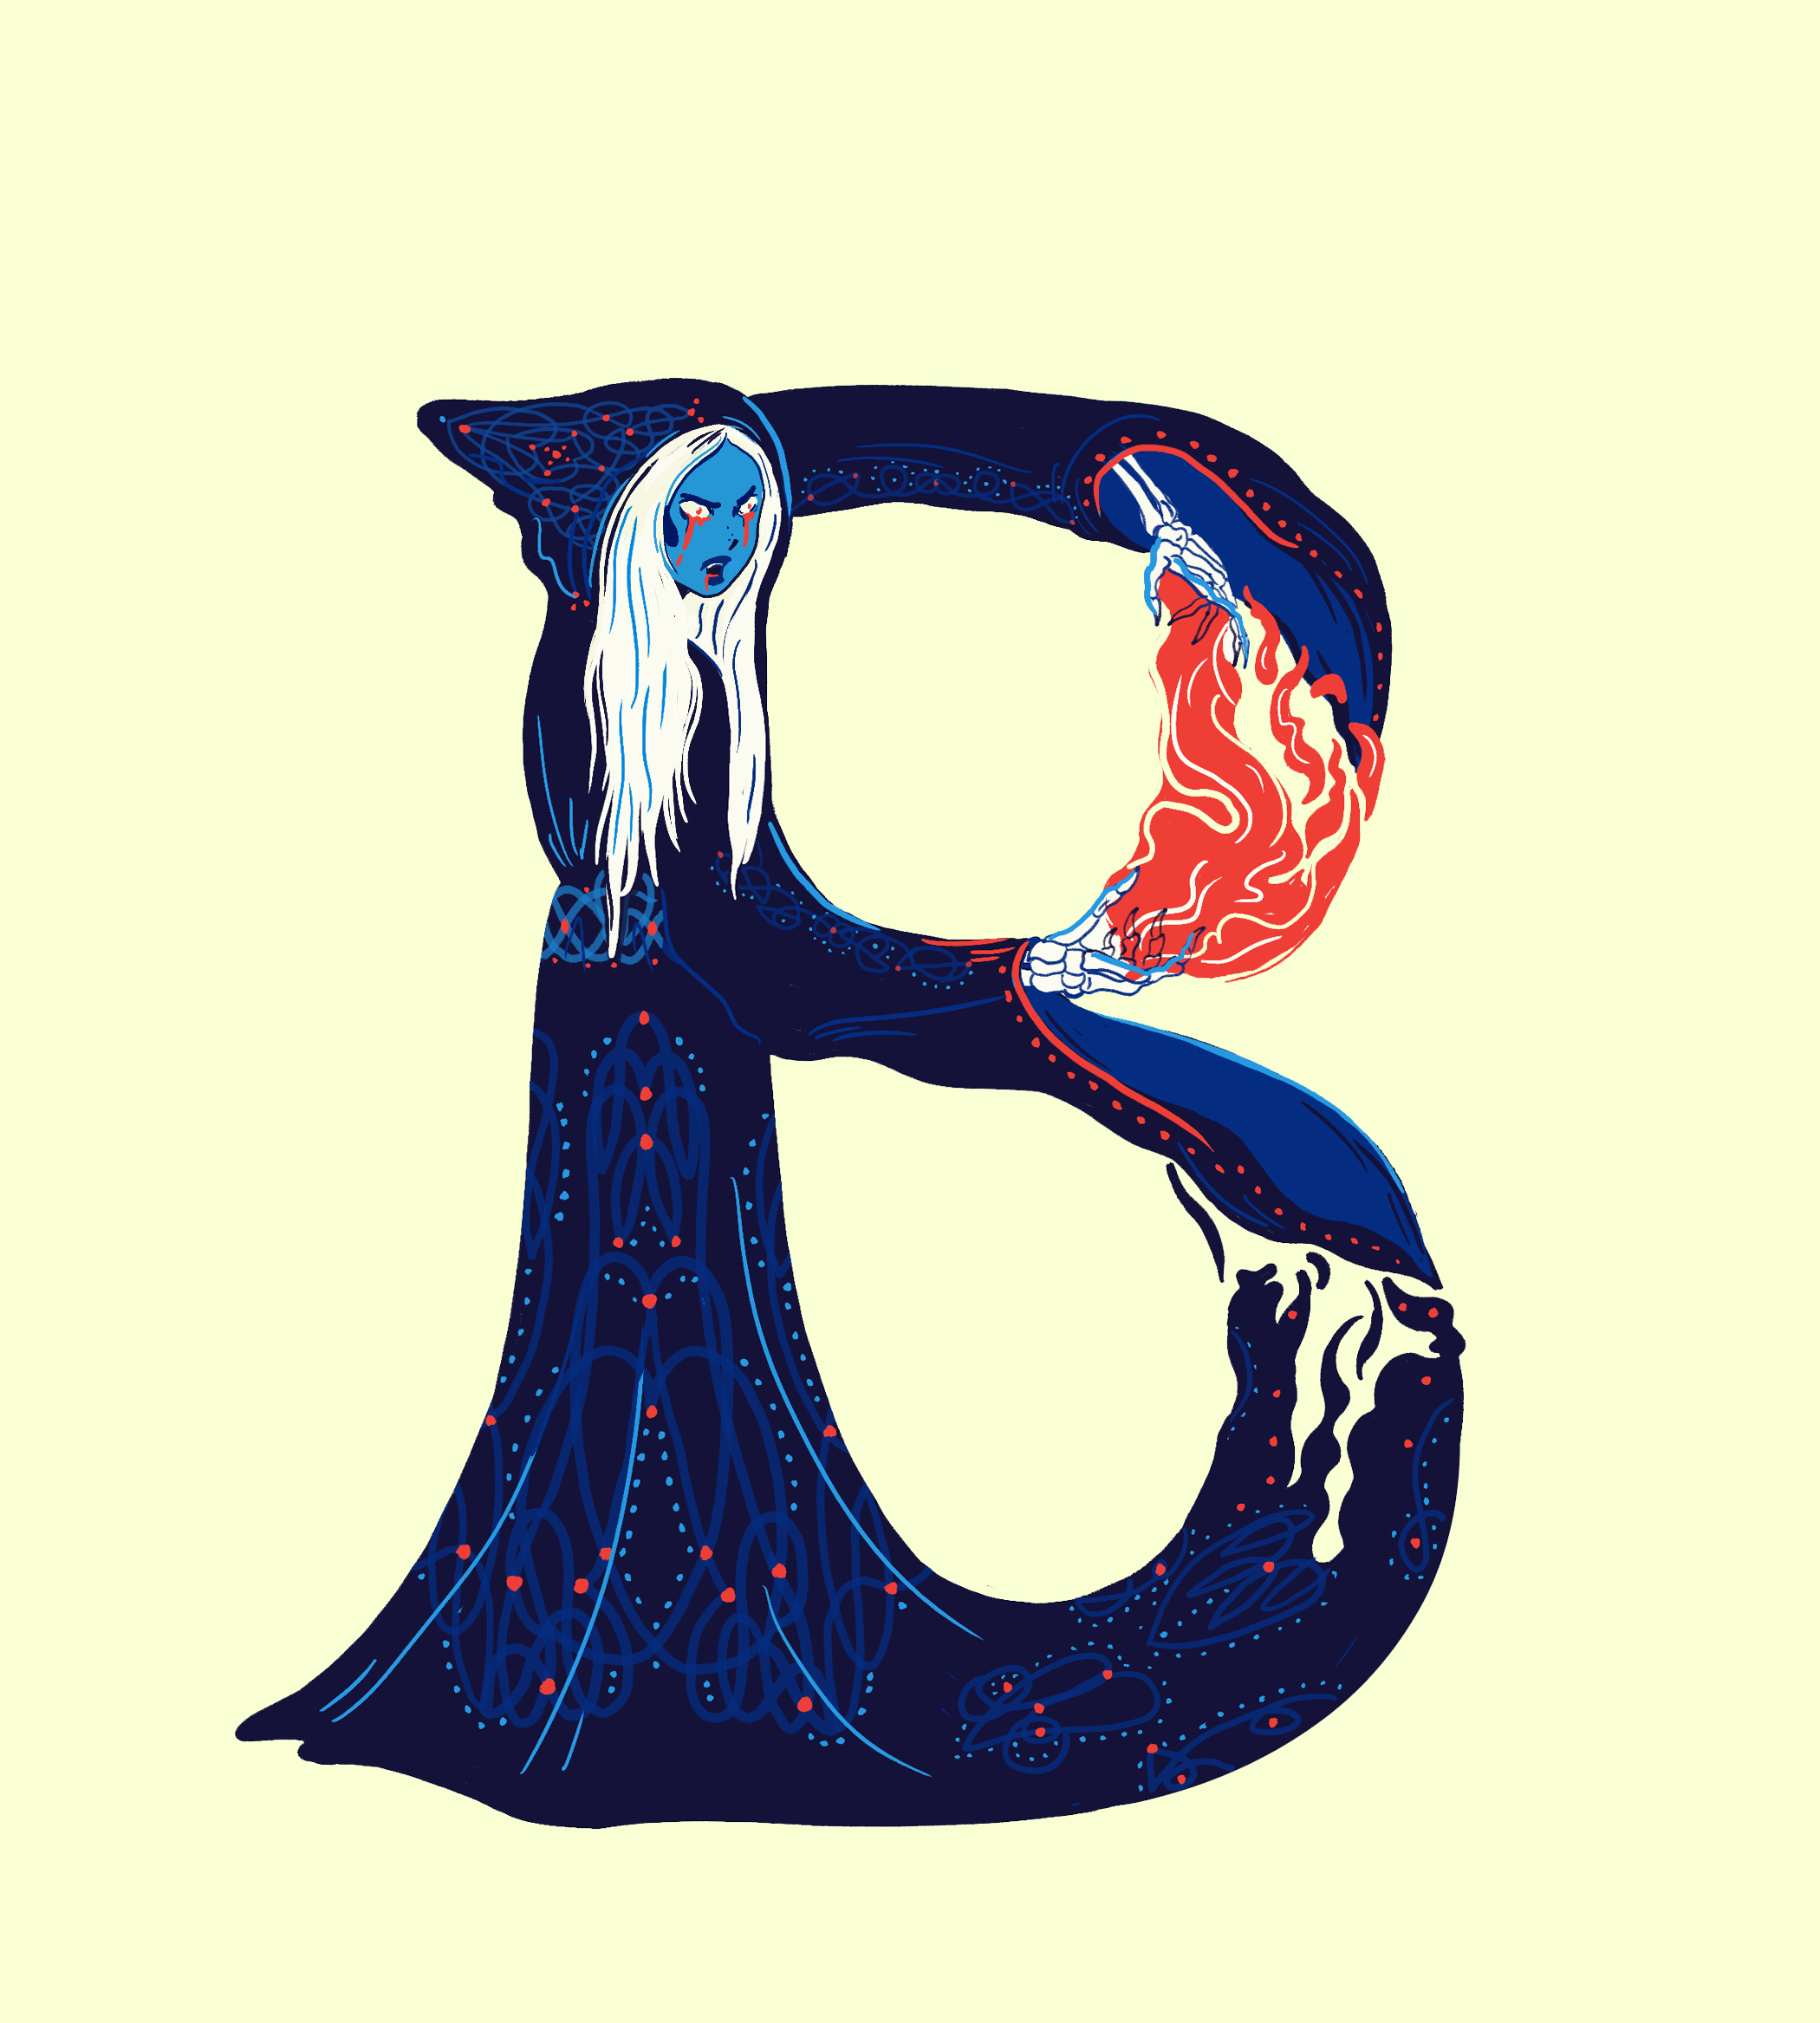 B is for Banshee